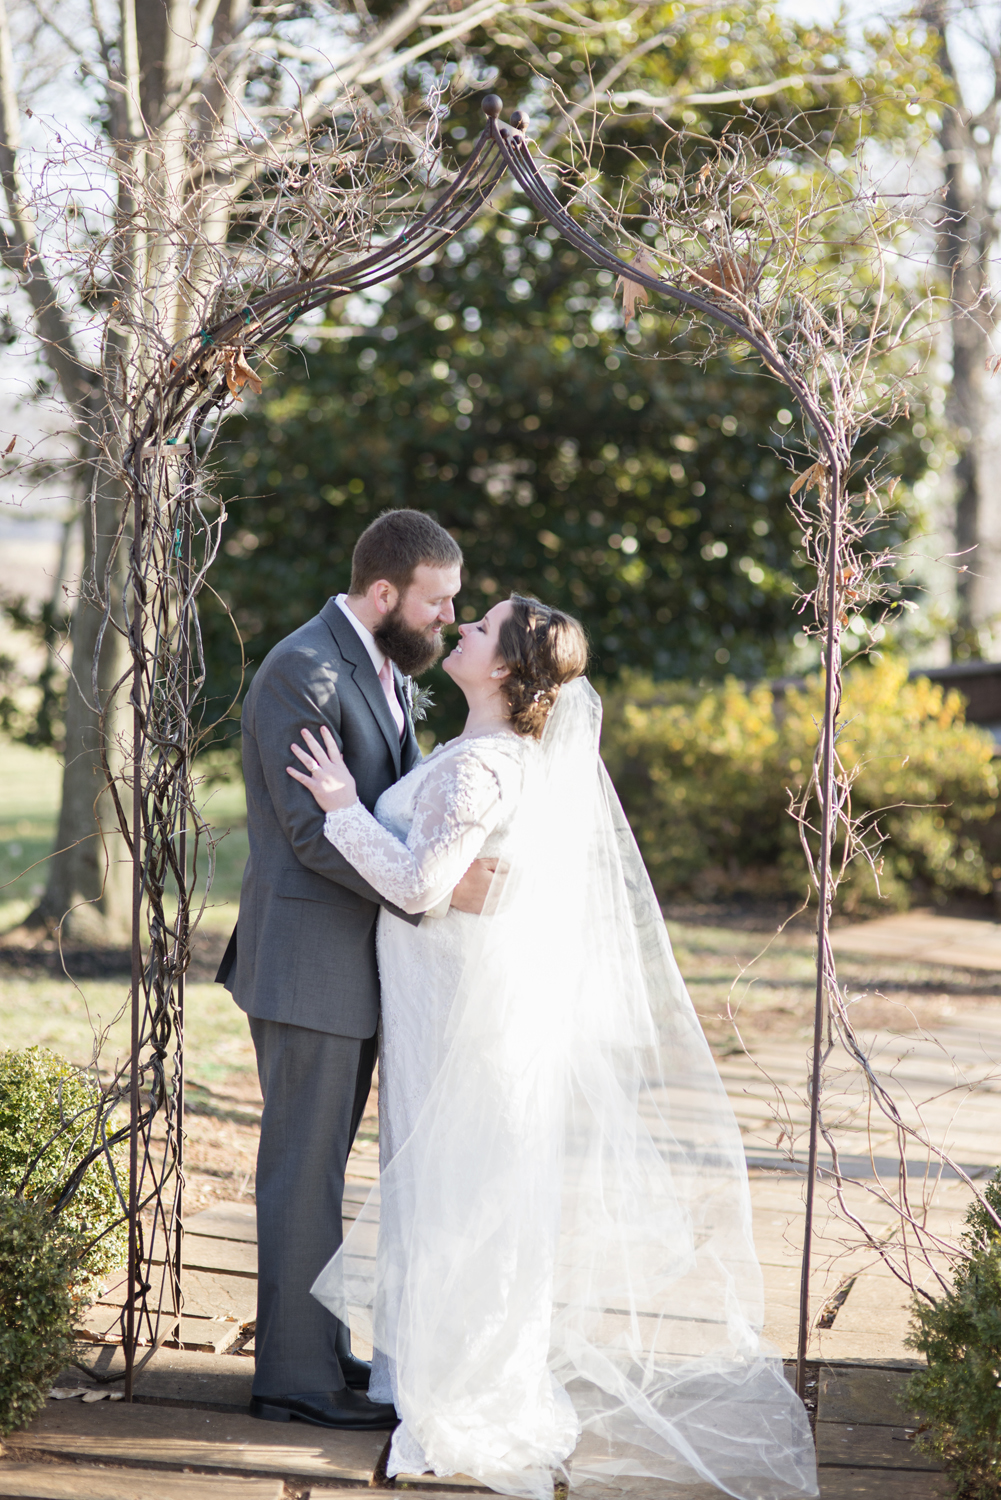 Bride and groom portraits under an arch